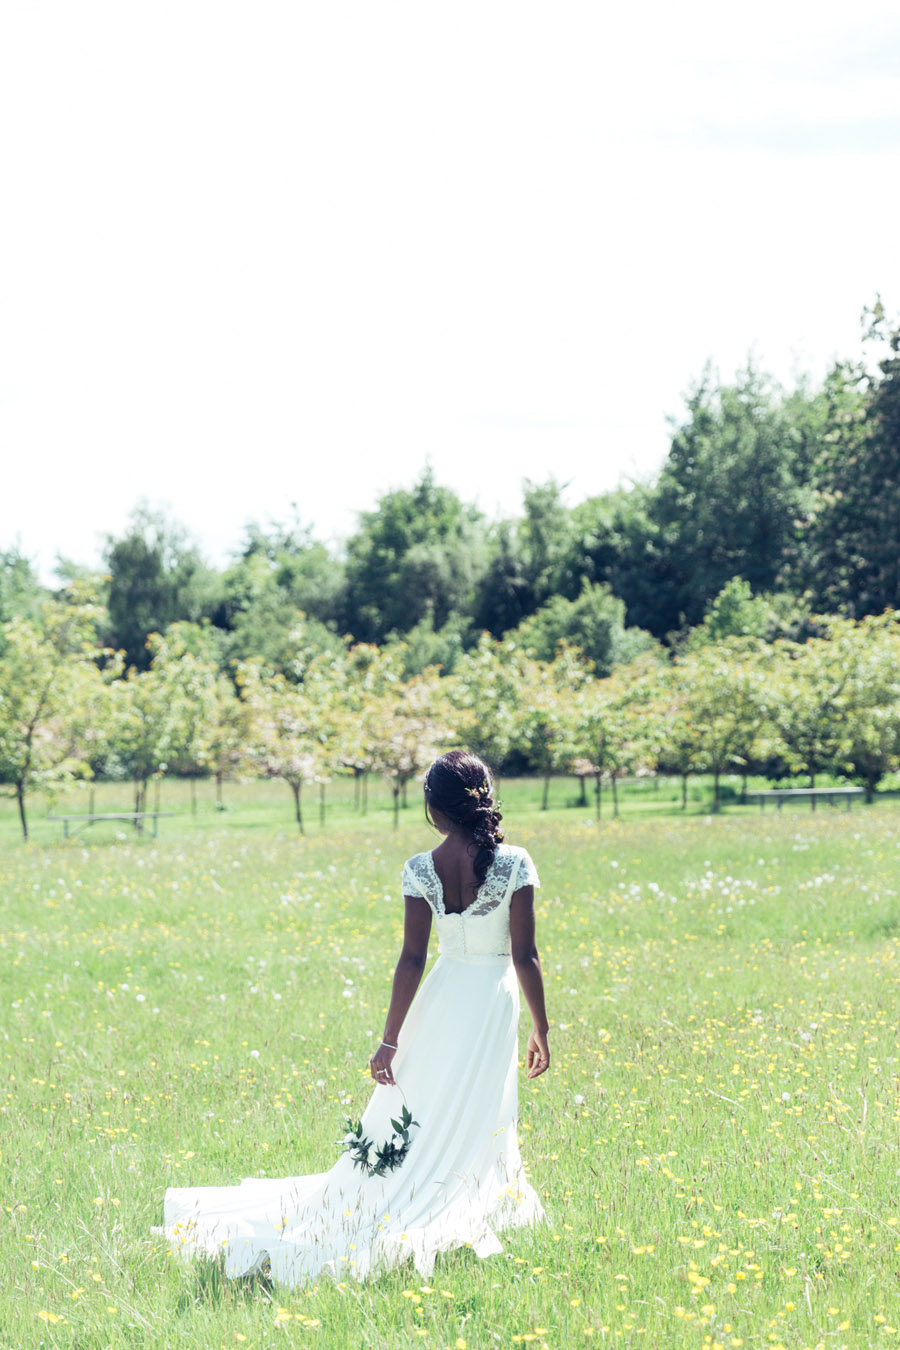 Beautiful wedding dresses in the free-spirited Matara wedding venue - photo credit Sally Anne Photography (21)